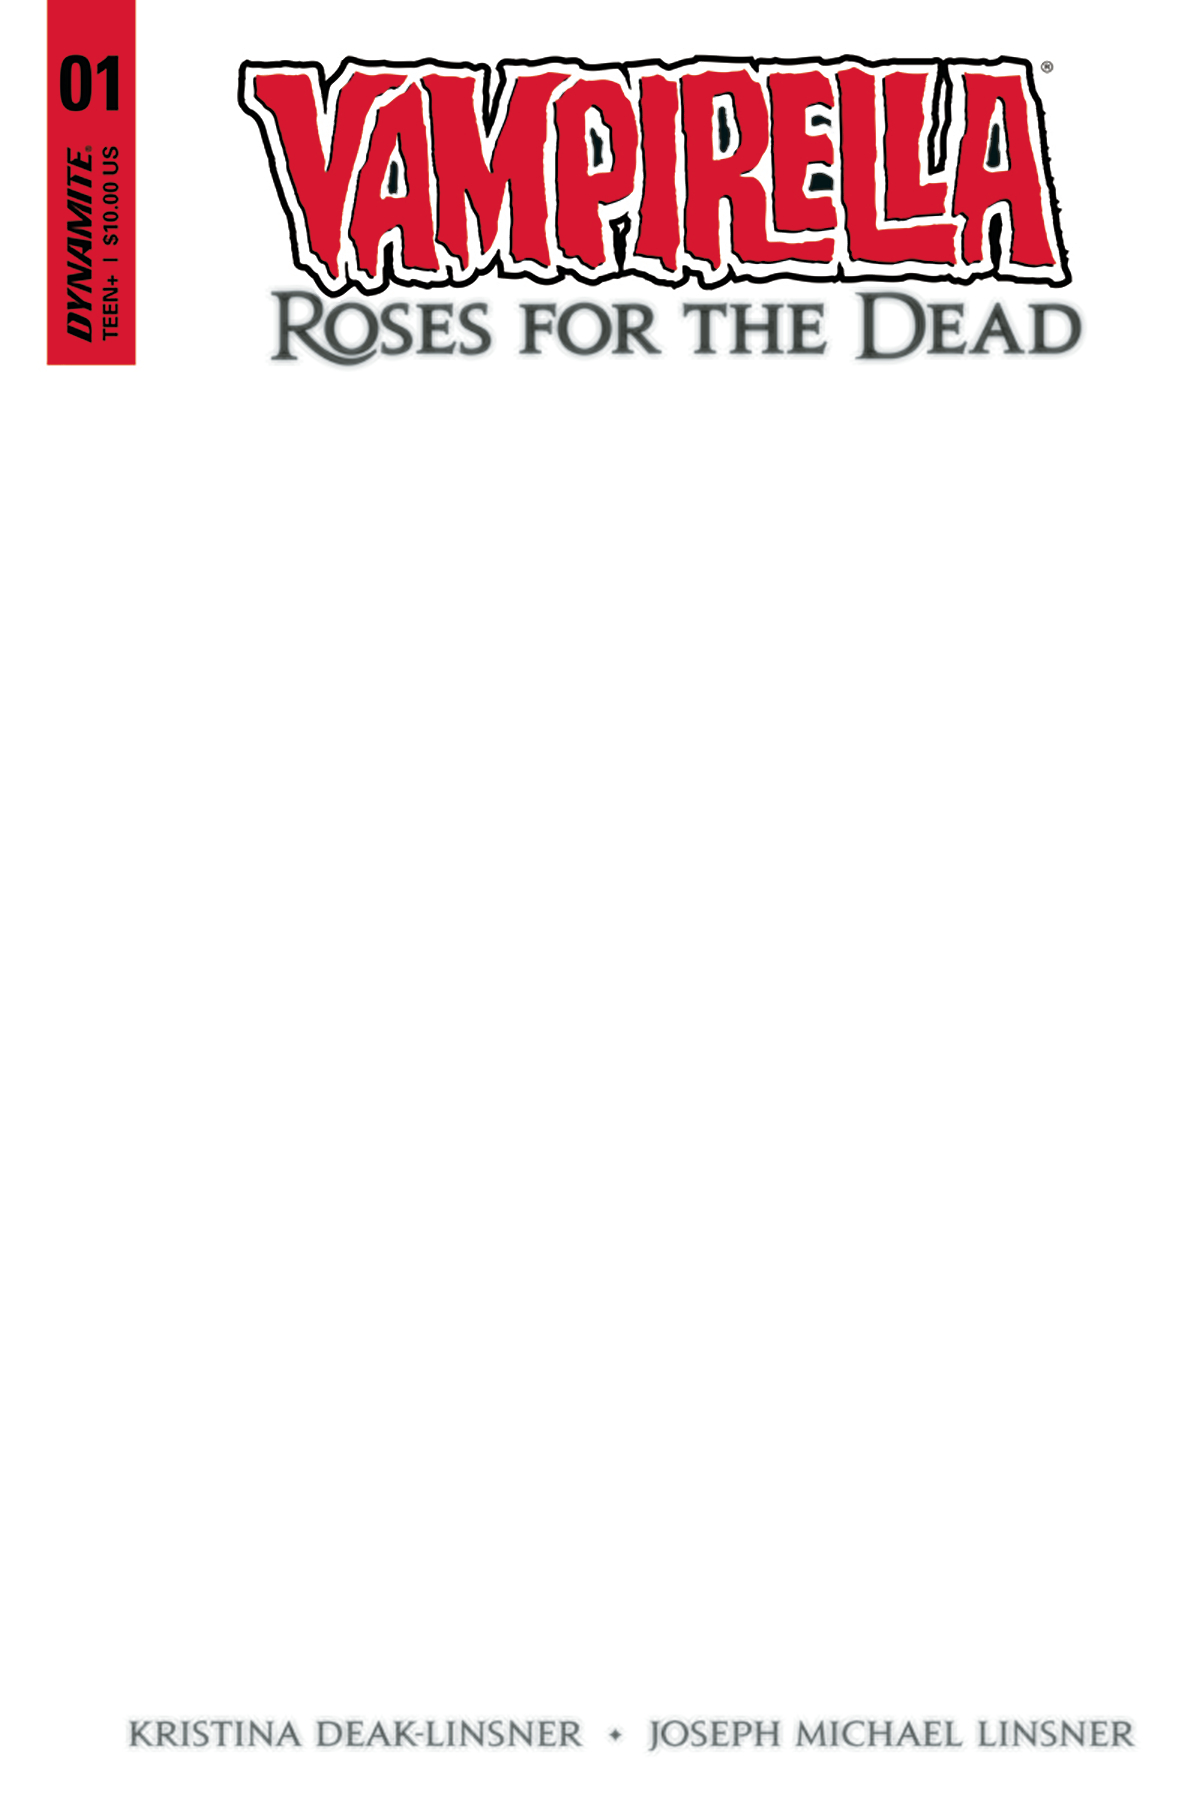 VAMPIRELLA ROSES FOR DEAD #1 (OF 5) BLANK AUTHENTIX (MR)